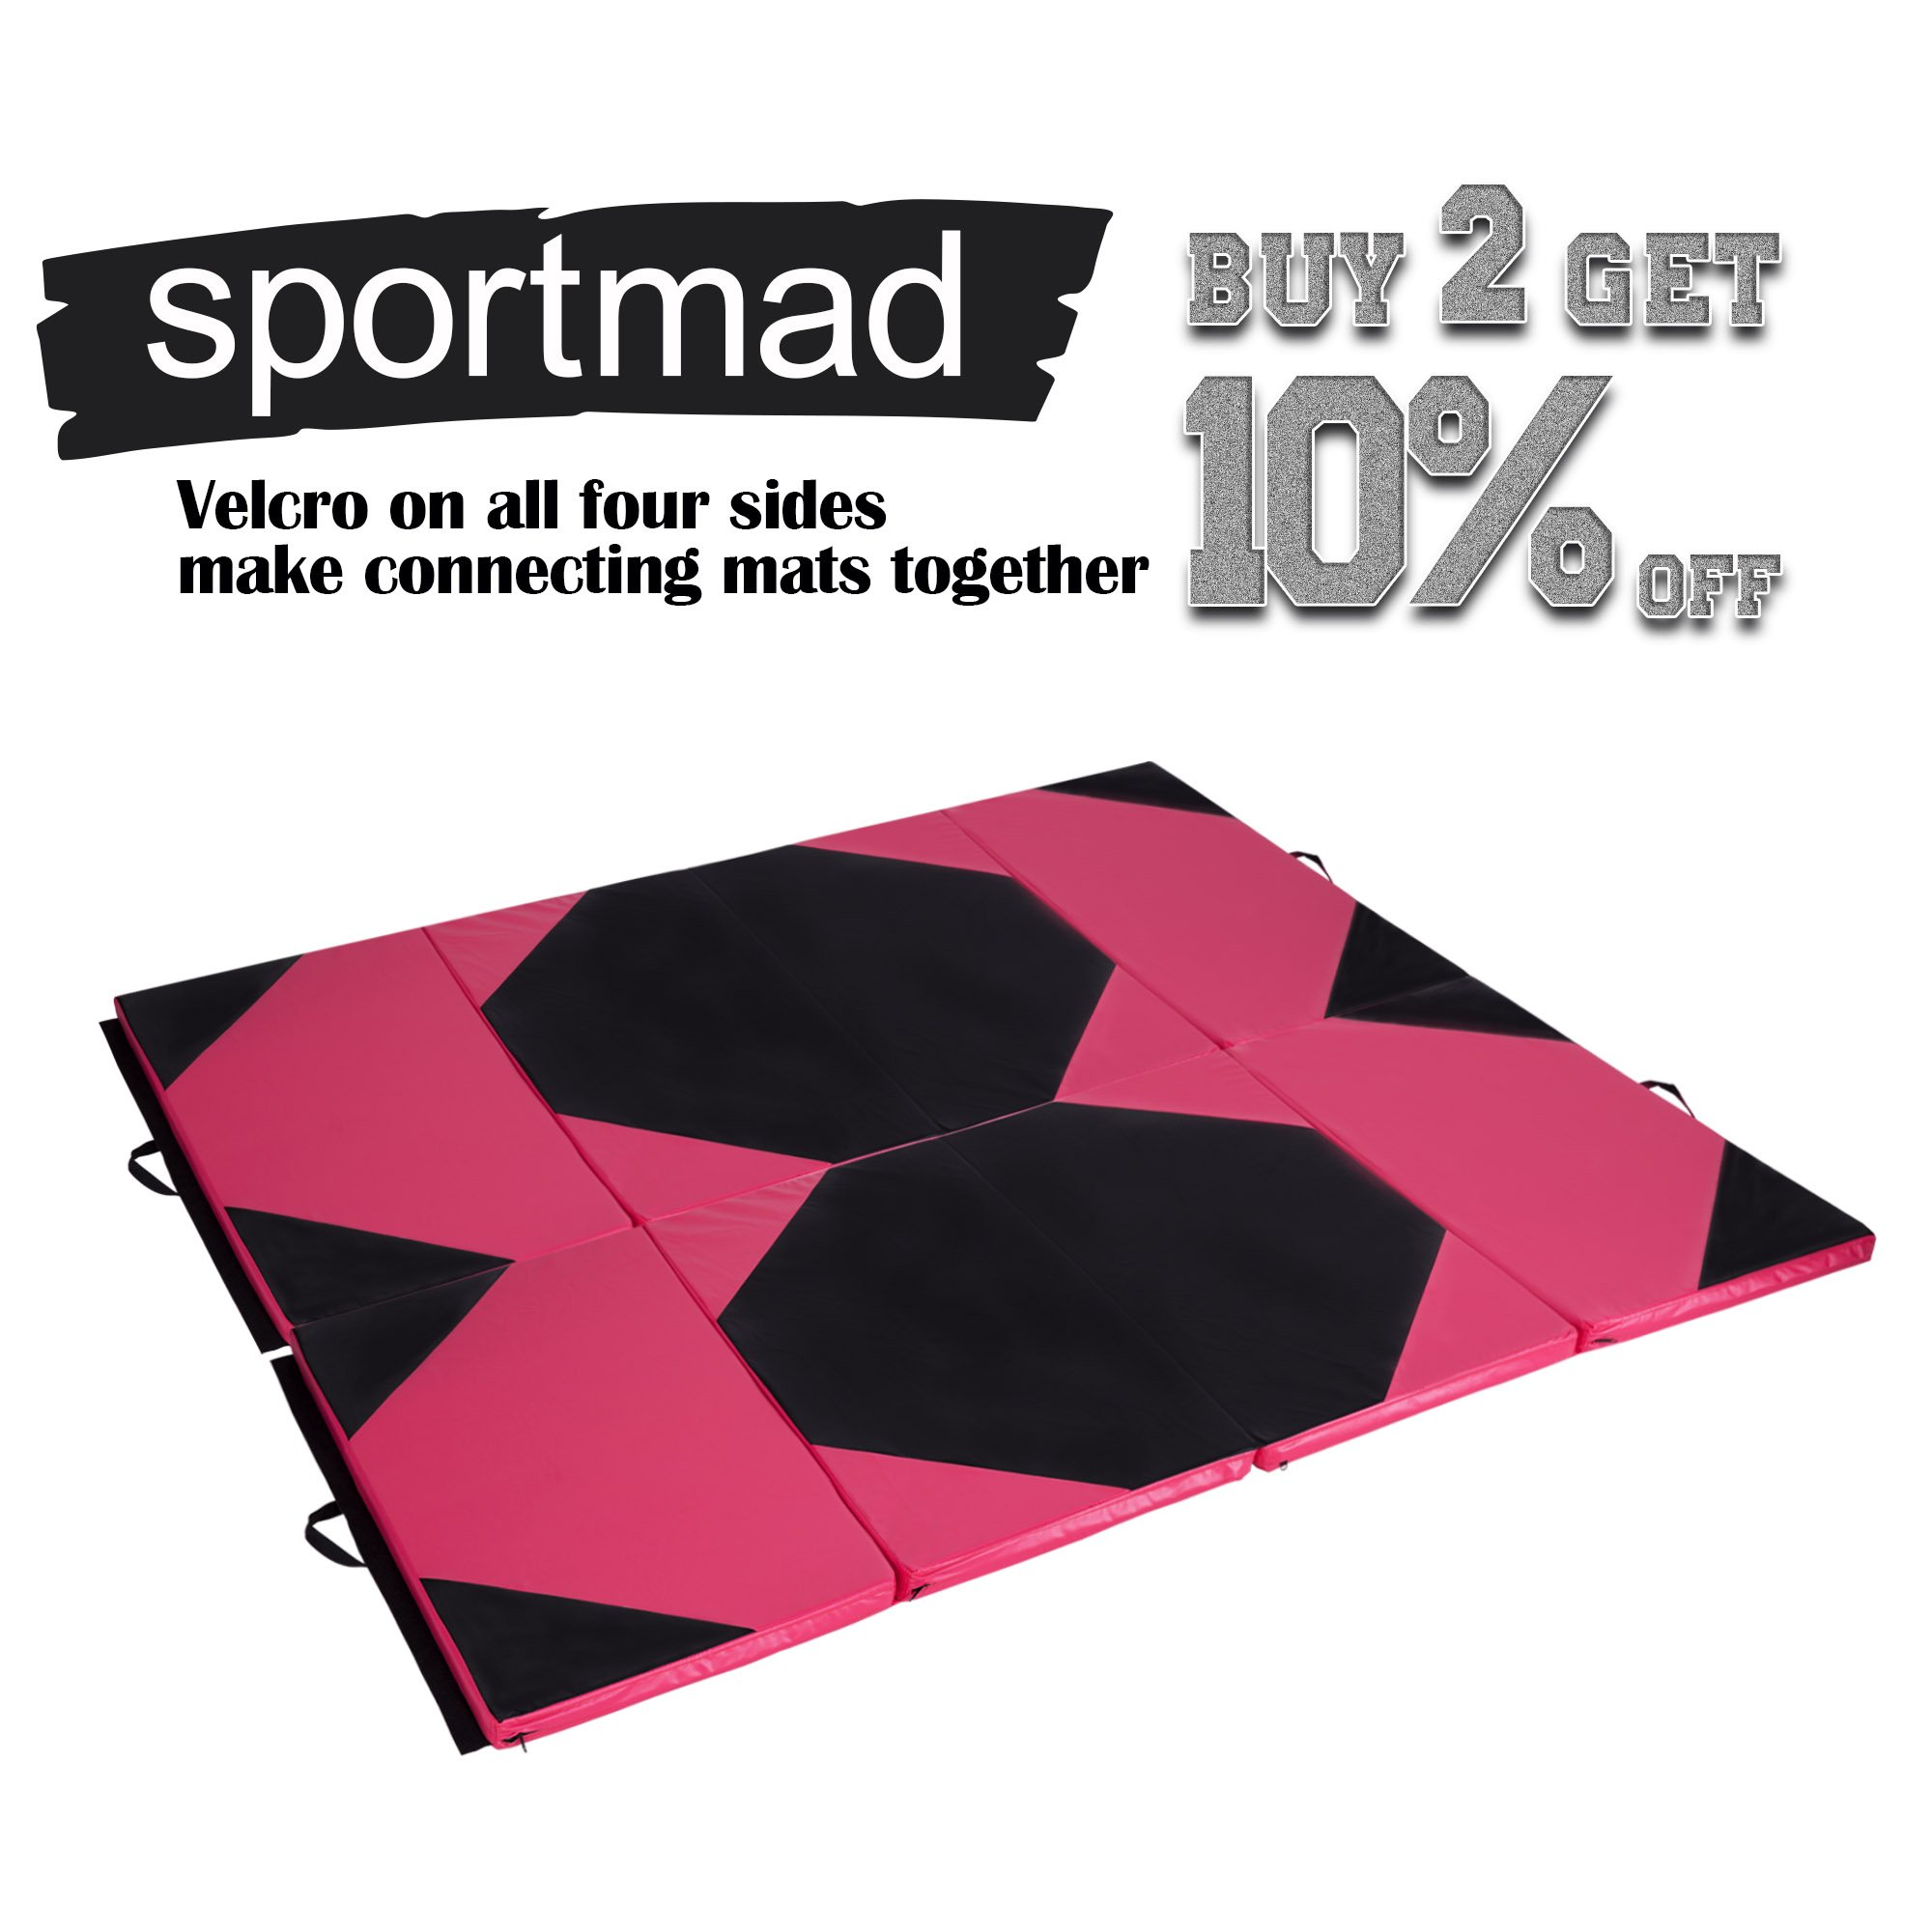 Sportmad 4'x10'x2 Thick Folding Panel Gymnastics Tumbling Mat Gym, Fitness, Exercise (Black/Pink) by Sportmad (Image #7)